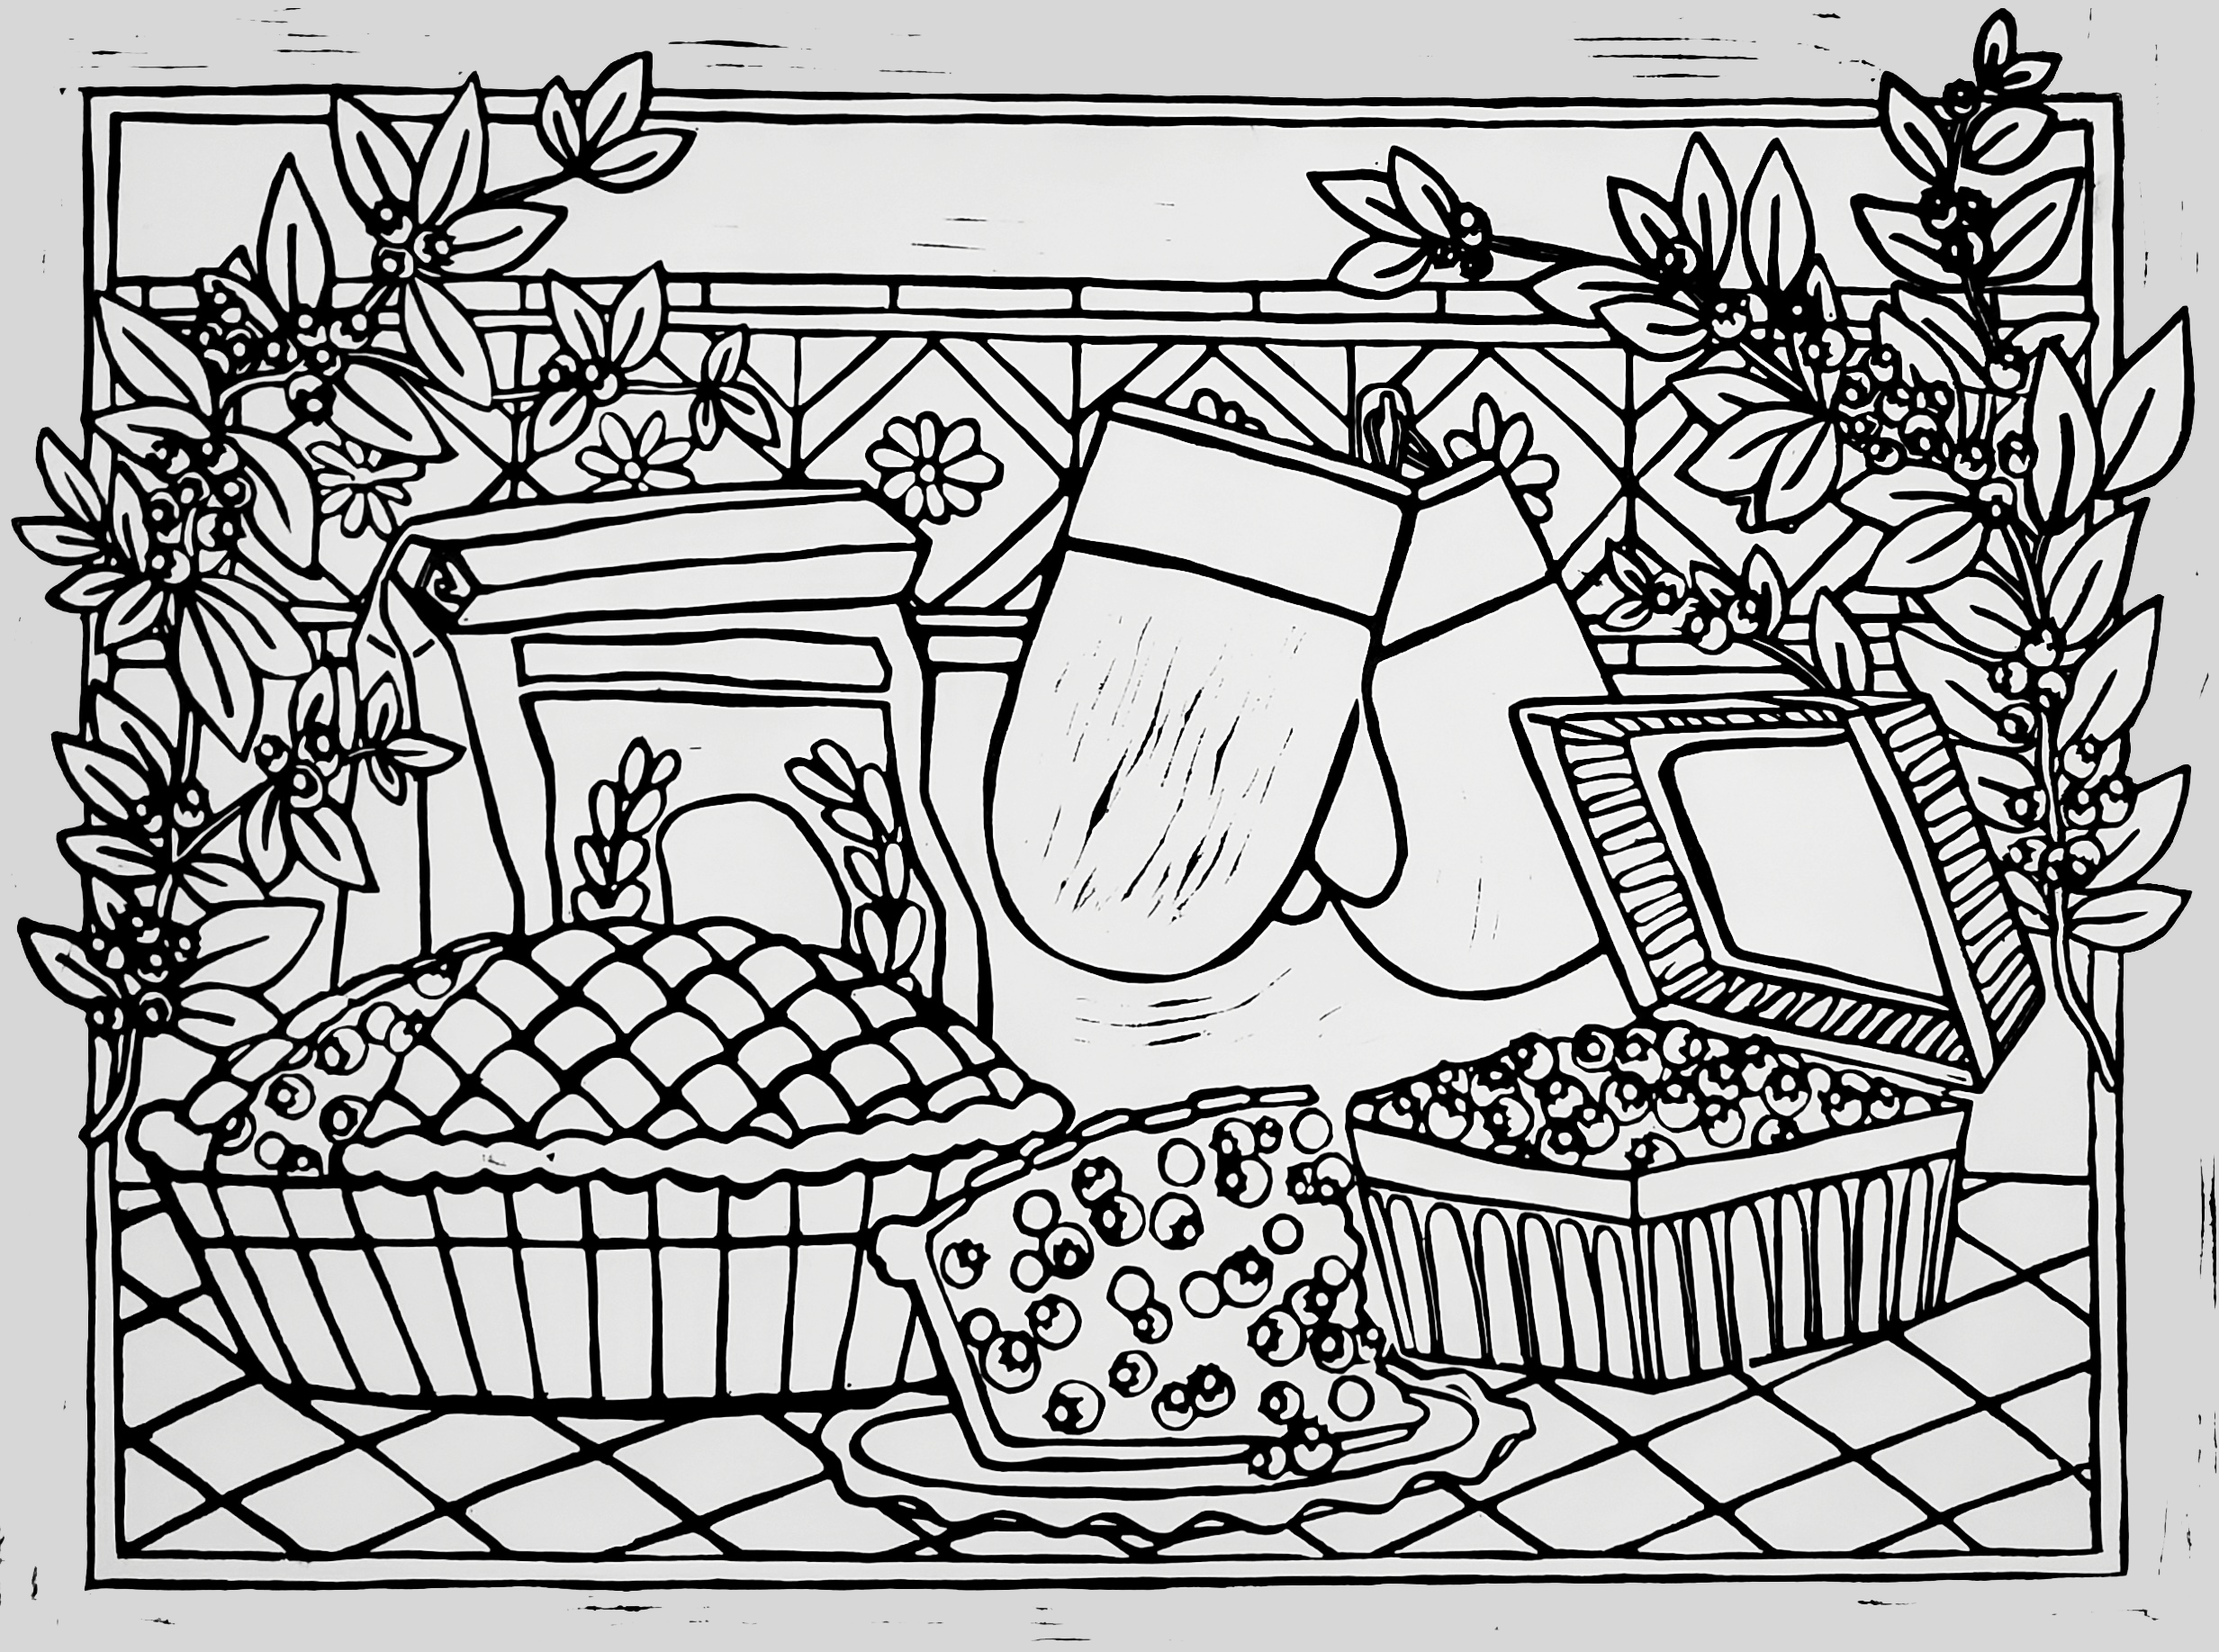 A picture of a linocut print depicting a container of blueberries, a blueberry pie with a slice cut out of it, and of the missing slice sitting on a plate. Behind them are a pair of oven mitts and a closed paper sack of flour. There is a row of tiles with